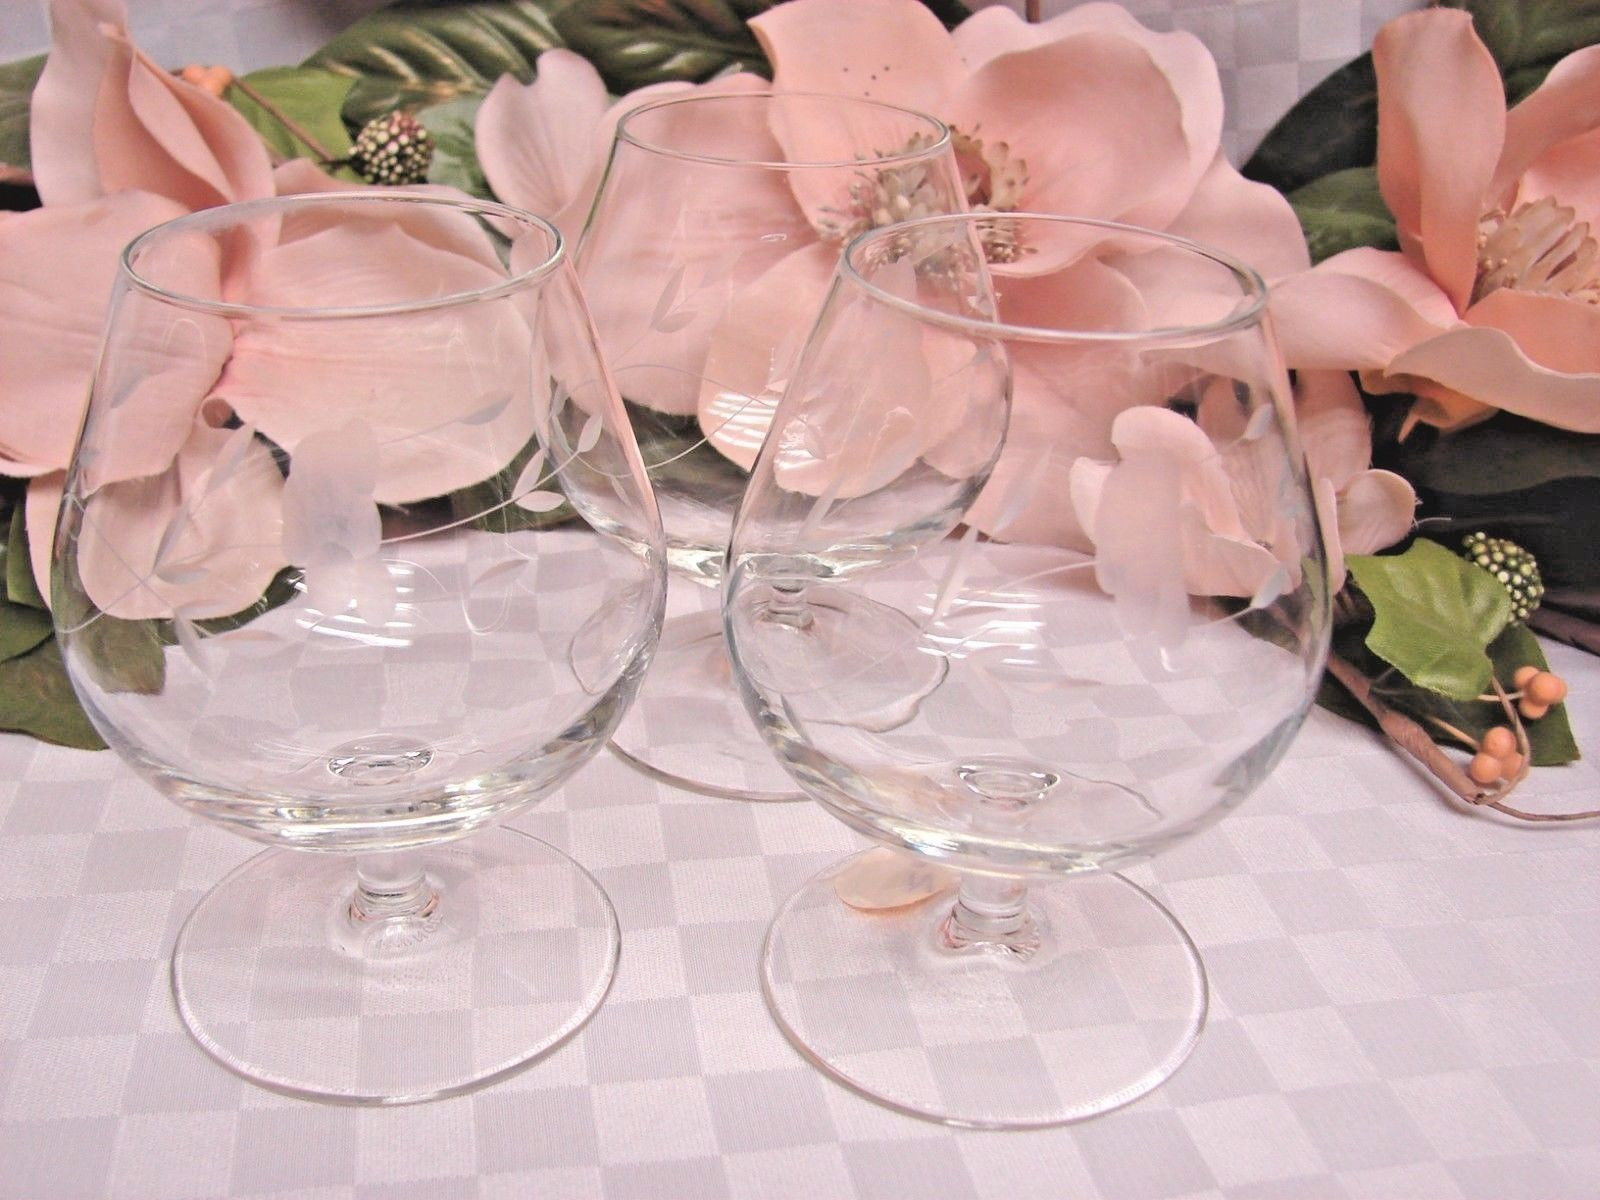 Princess House Flower Vase Of Princess House Heritage Crystal Floral Design Clear 3 Footed Brandy In Princess House Heritage Crystal Floral Design Clear 3 Footed Brandy Glass Royal Teacup Body Porcelian Replacement Doulton Dinnerware Cupcake